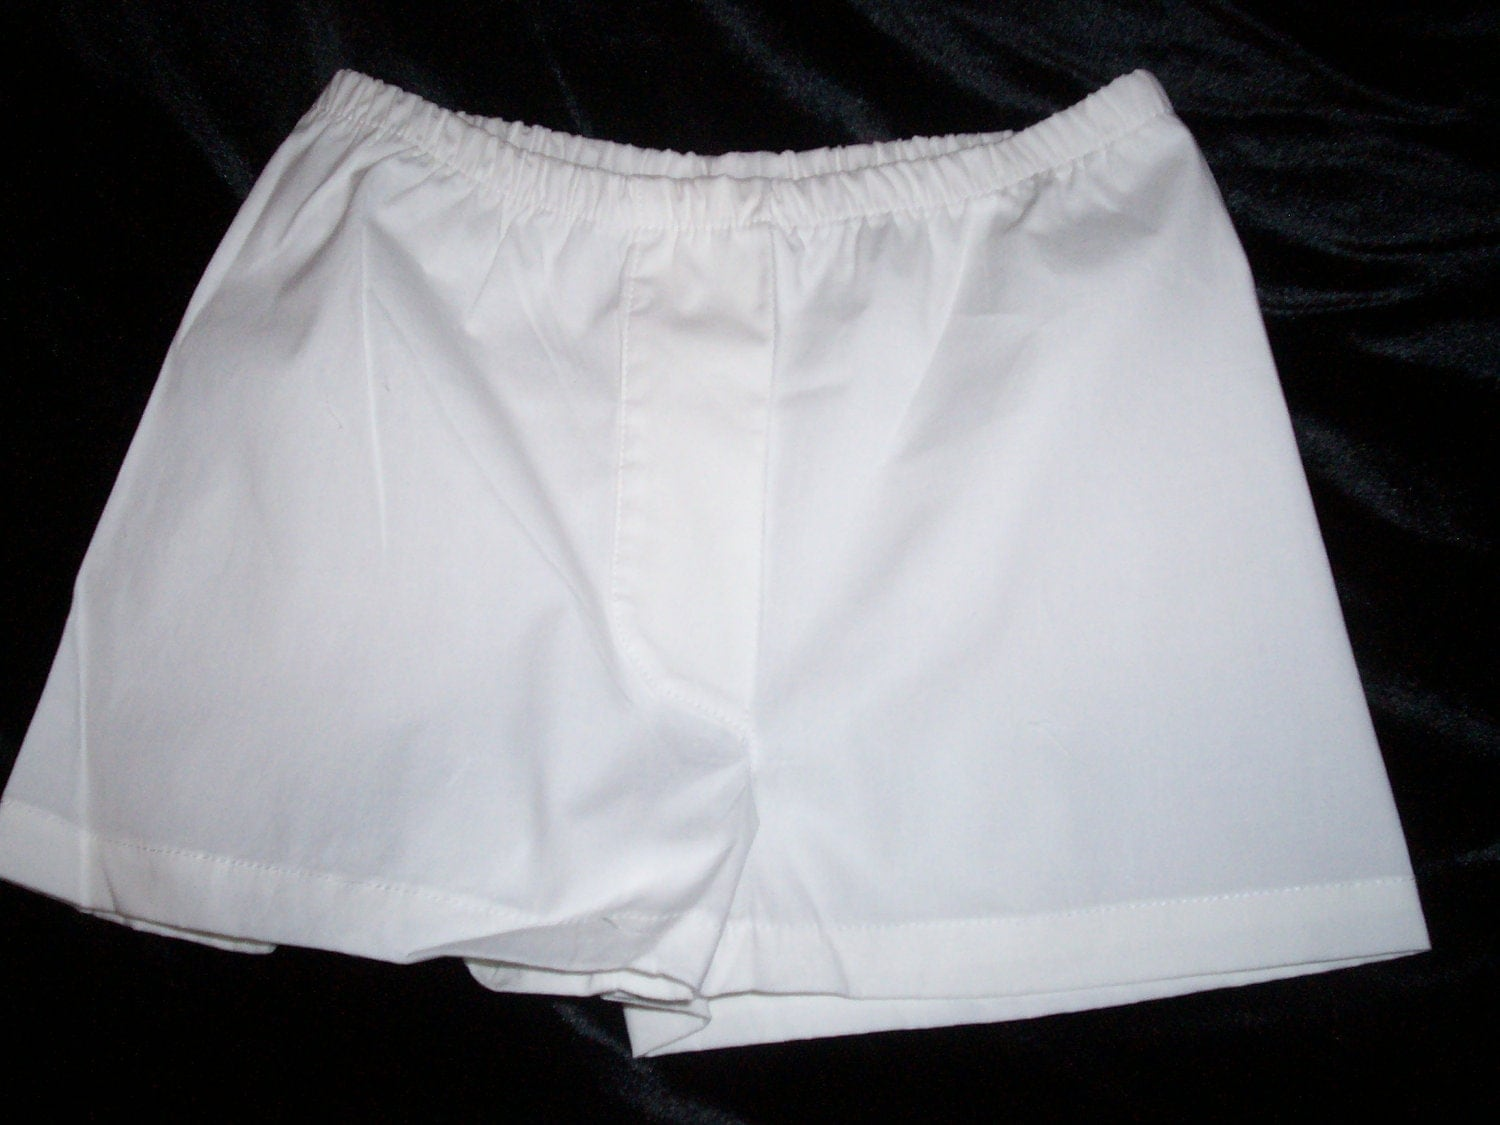 You searched for: baby boxer shorts! Etsy is the home to thousands of handmade, vintage, and one-of-a-kind products and gifts related to your search. No matter what you're looking for or where you are in the world, our global marketplace of sellers can help you find unique and affordable options. Let's get started!